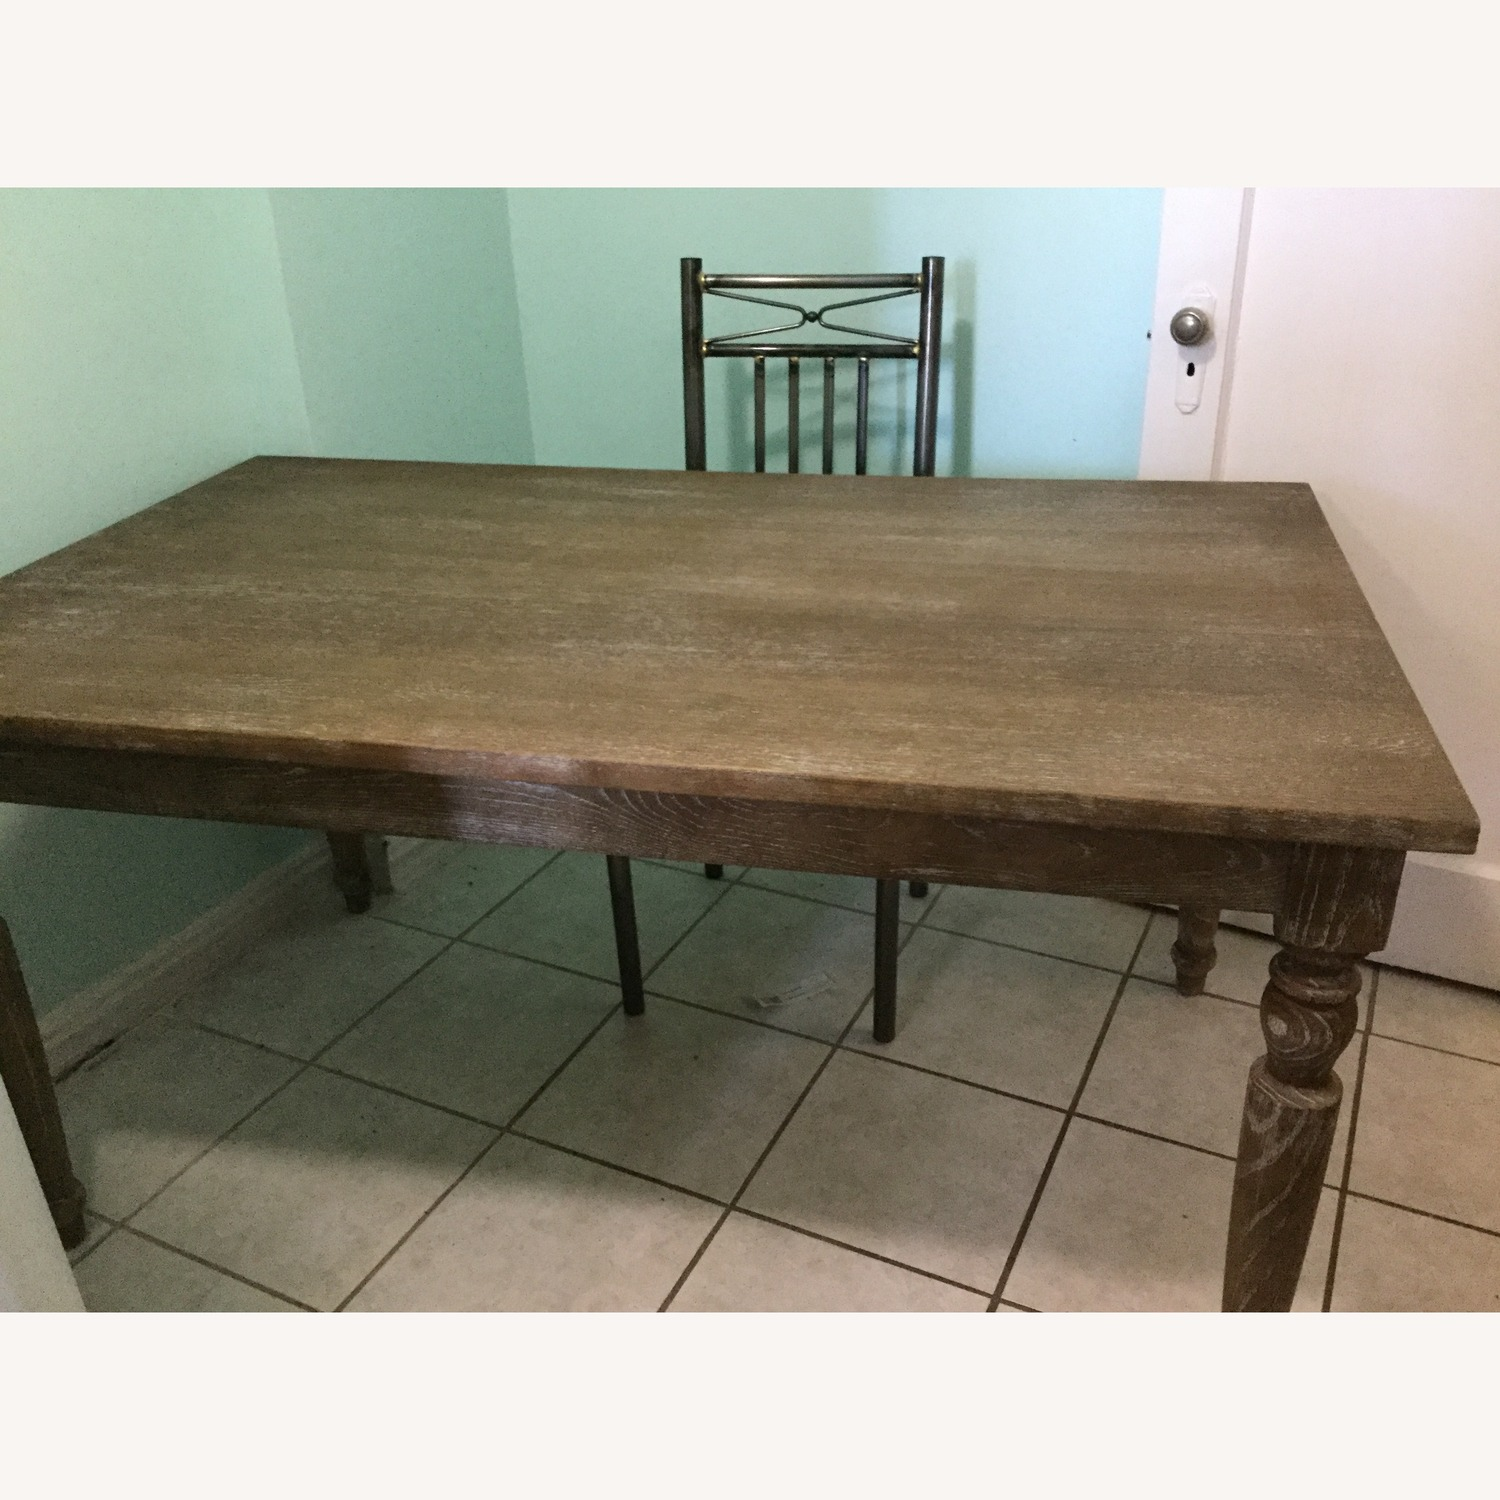 Stratford Dining Table with Chairs - image-1